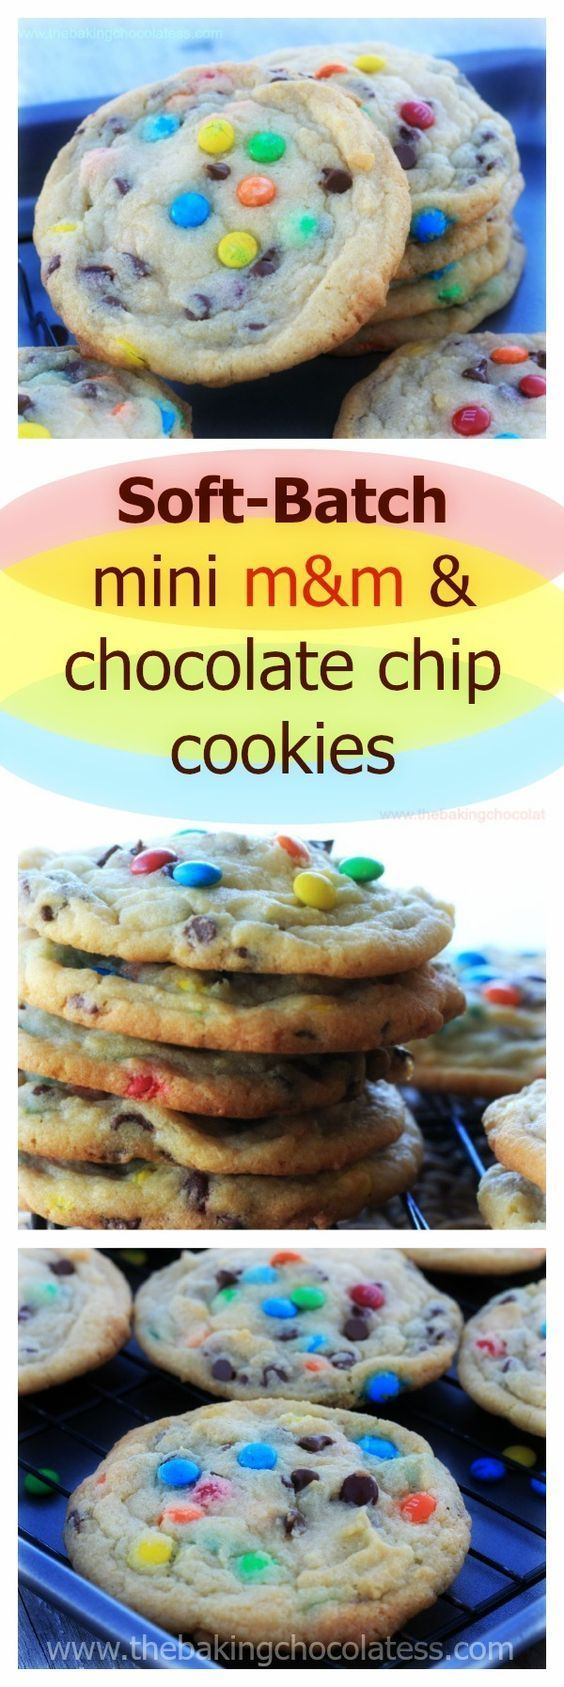 Soft, fluffy, bakery style, really, really good cookies with random mini chocolate chips and mini M&M's in every bite. via @https://www.pinterest.com/BaknChocolaTess/